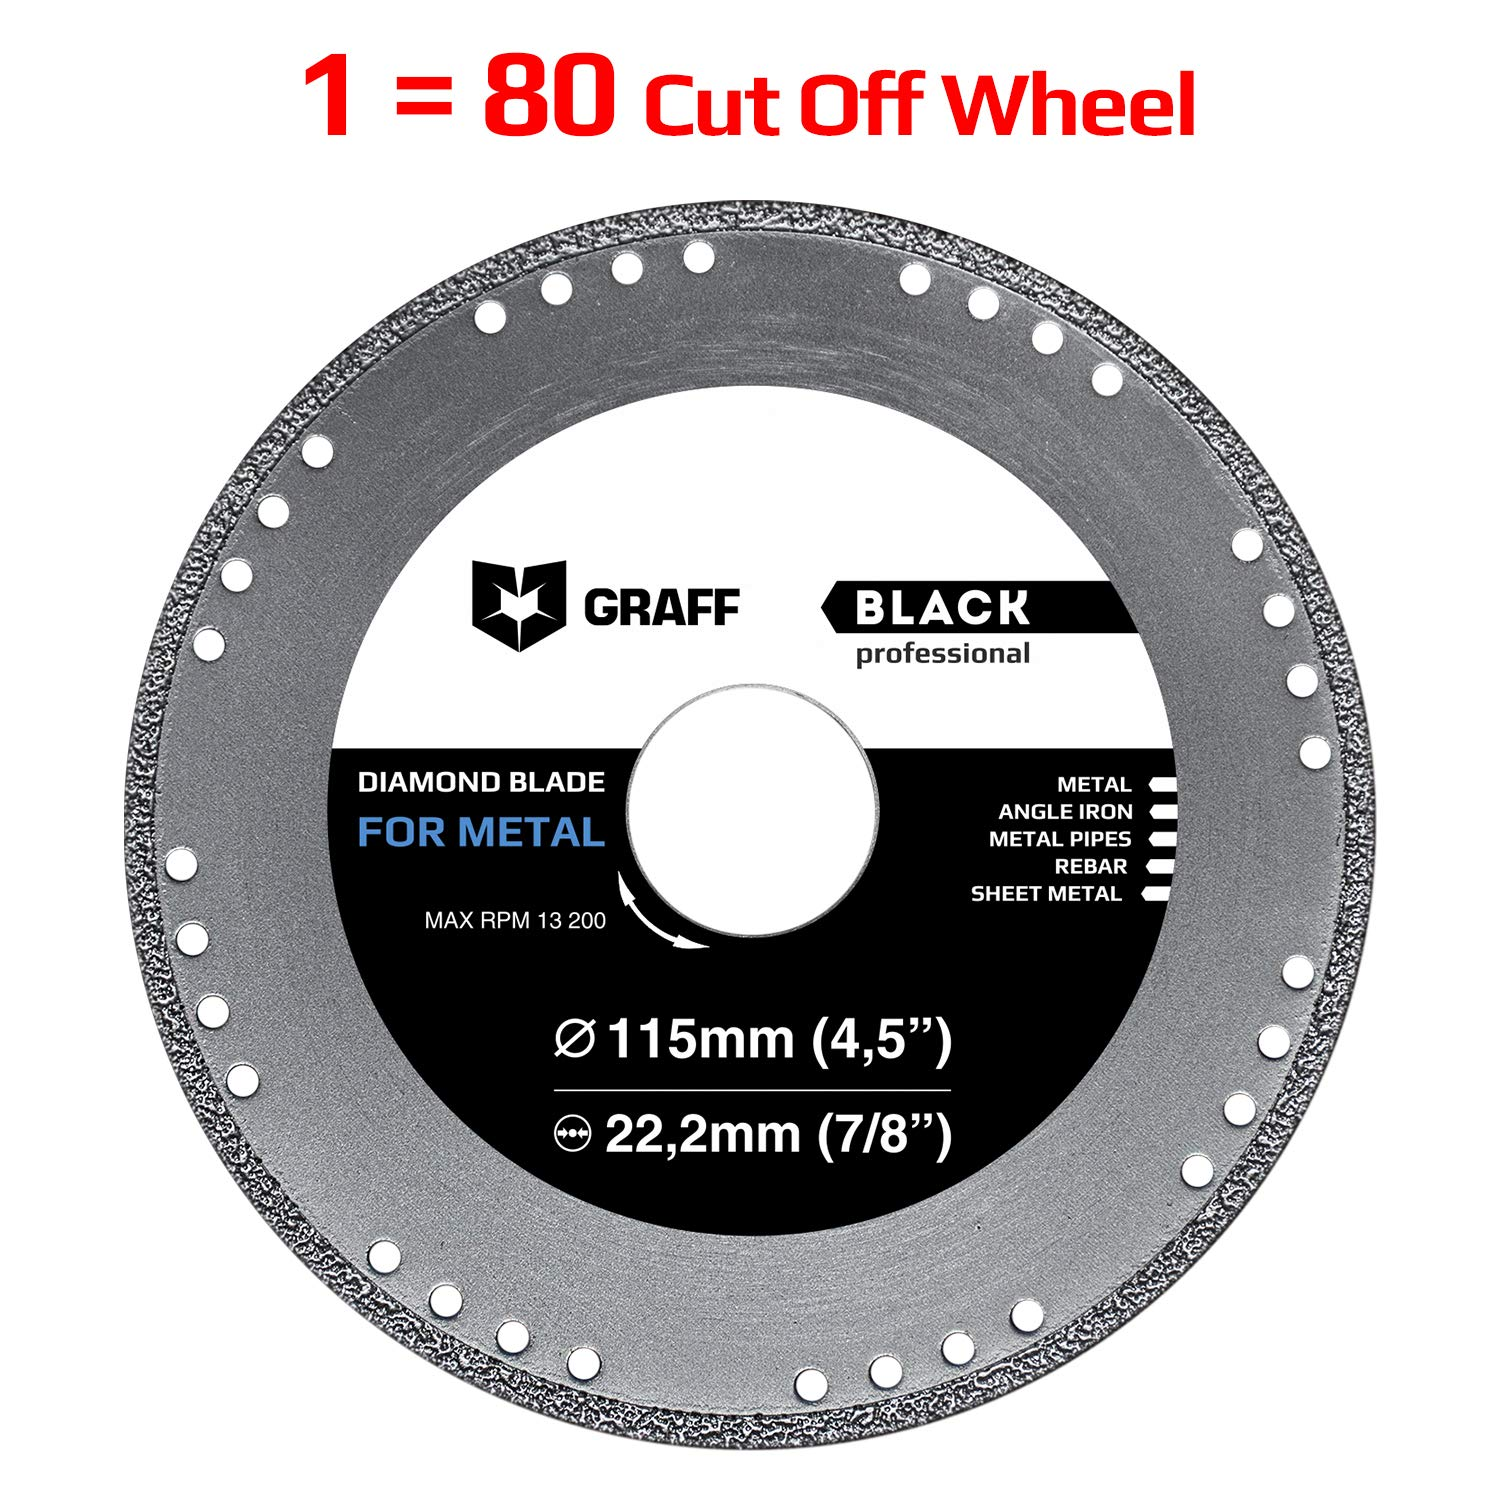 Cut Off Wheel GRAFF Black 4-1/2 Inch for Sheet Metal, Angle Iron, Pipes, Rebar, 7/8 Inch Arbor, Diamond Edge (4.5 Inch (115mm)) by Graff